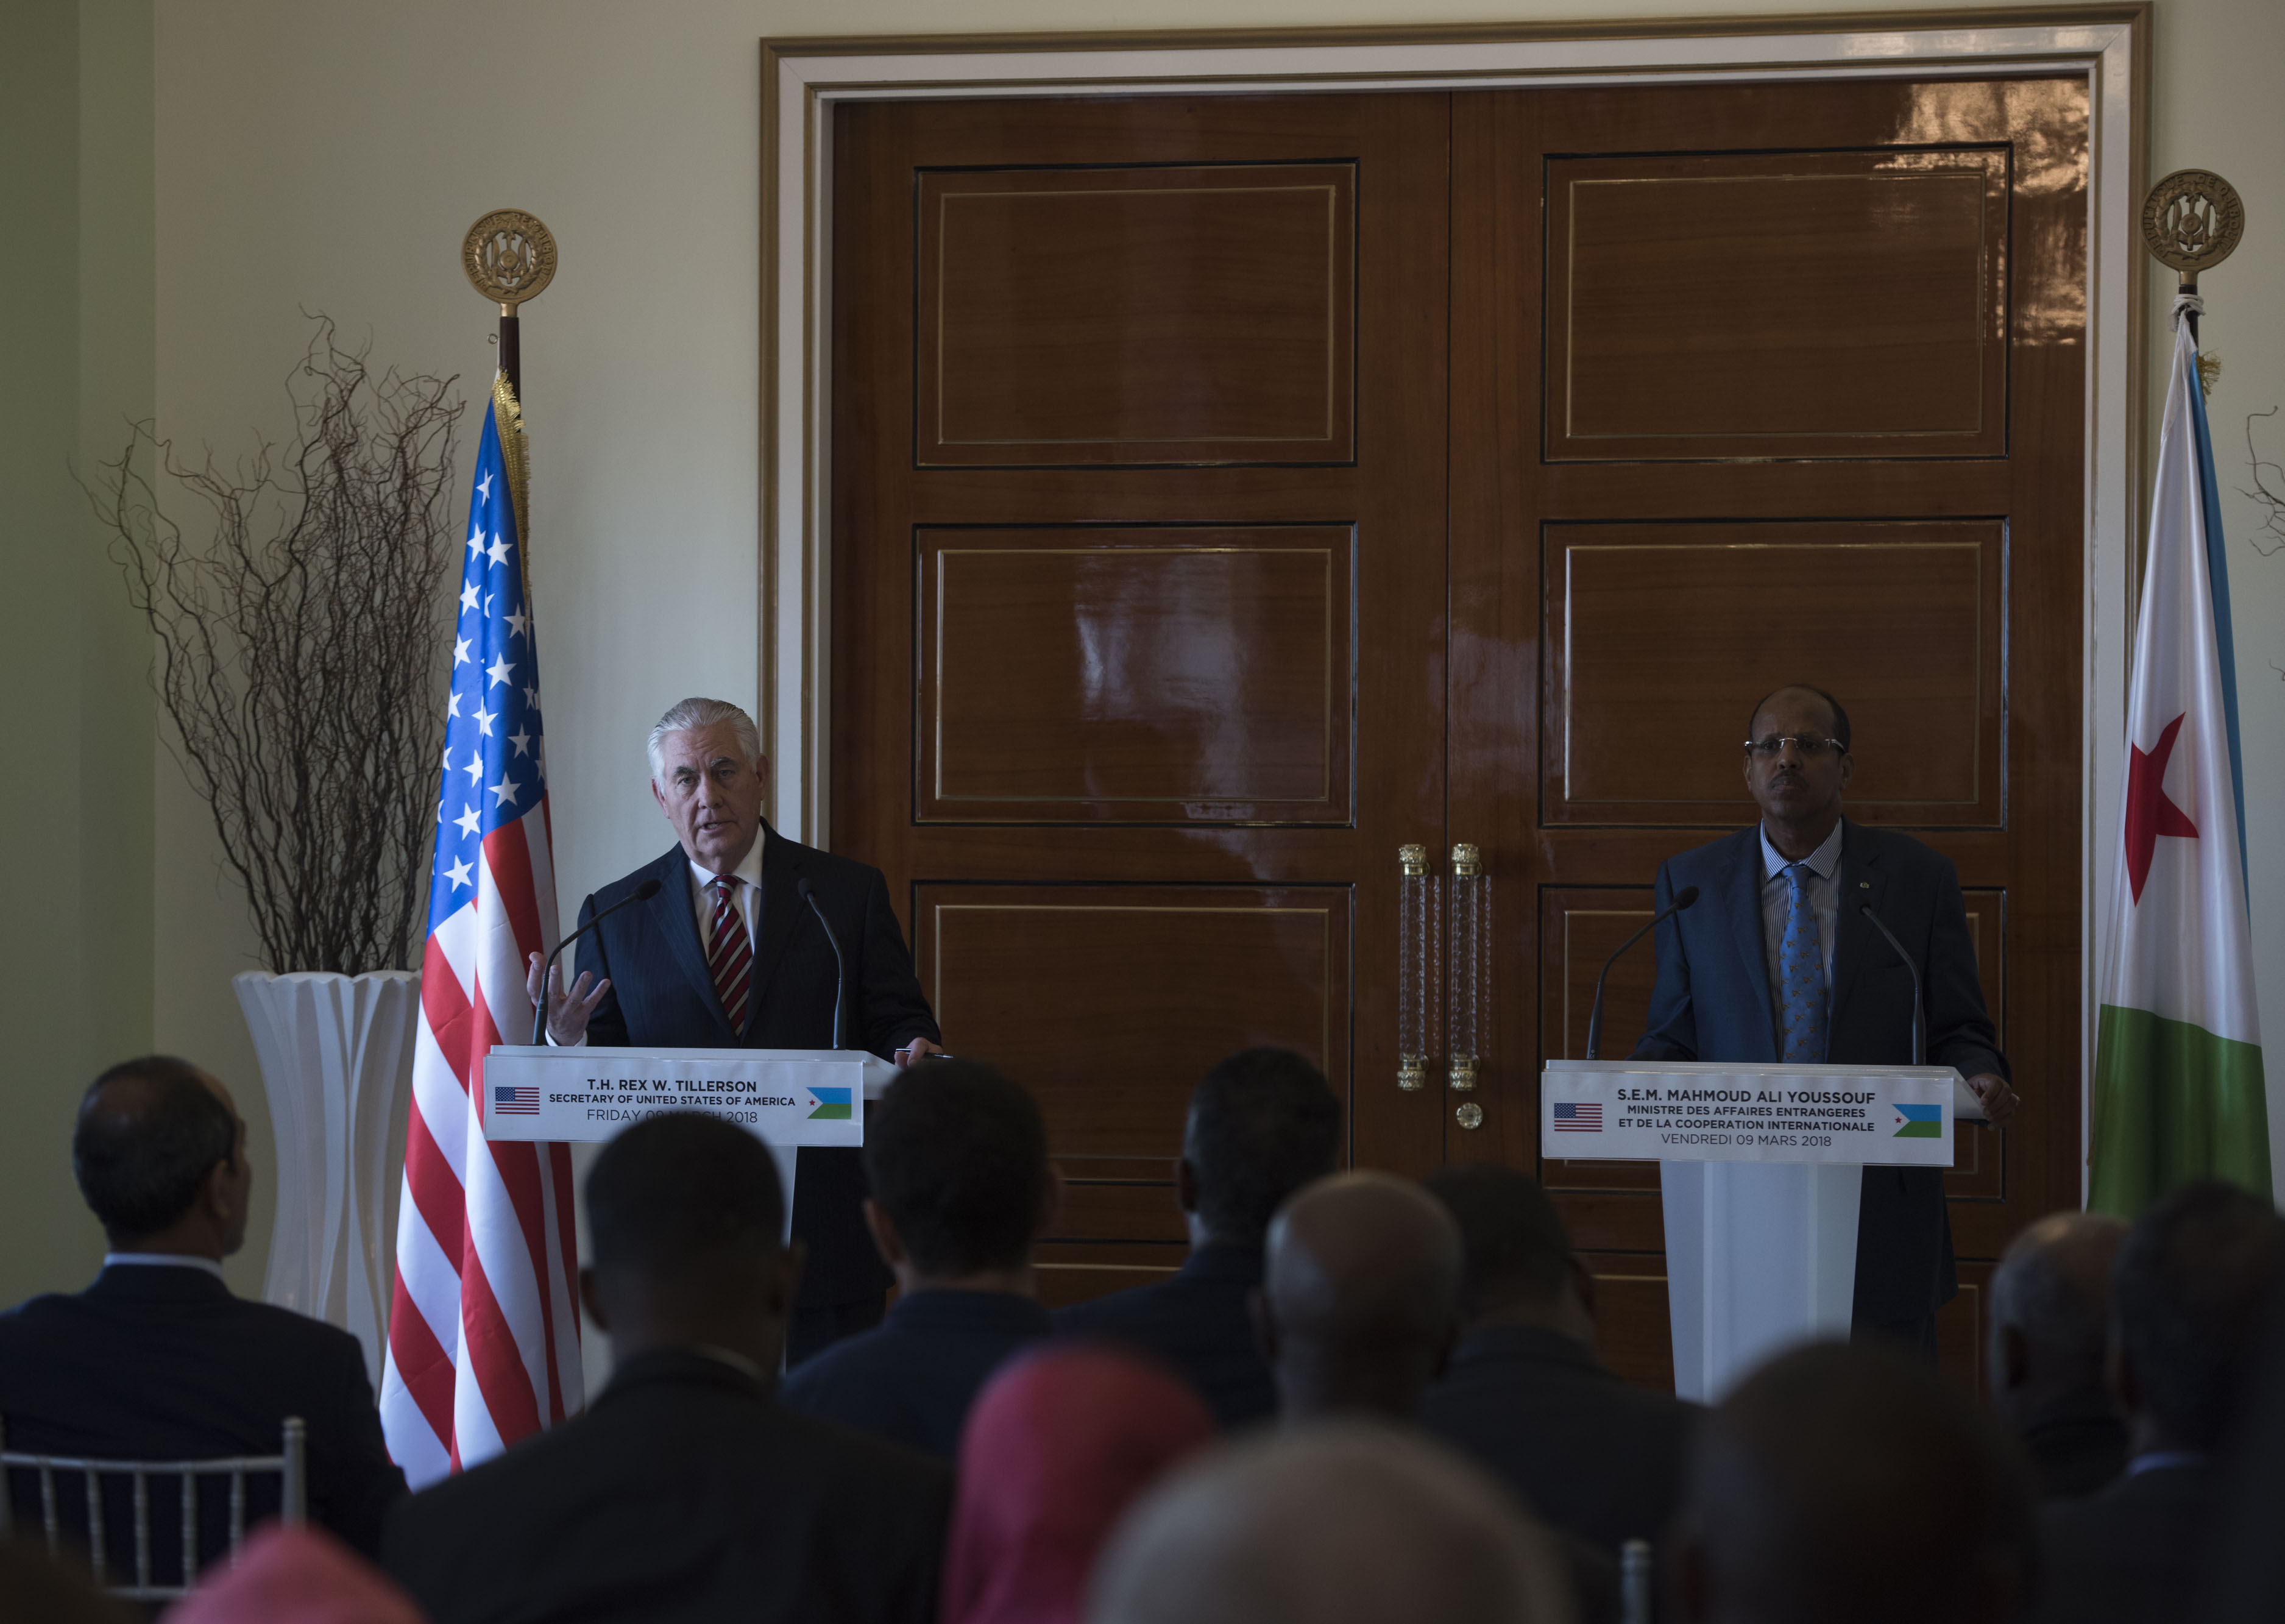 U.S. Secretary of State Rex Tillerson speaks at a joint press conference with the foreign minister Mahmoud Ali Youssouf at the Presidential Palace, Djibouti, March 9, 2018. Secretary Tillerson met with Youssouf in Djibouti to discuss the U.S.-Djiboutian partnership, and exchanged views on bilateral concerns, security threats, and economic reforms. (U.S. Air National Guard photo by Staff Sgt. Allyson L. Manners)